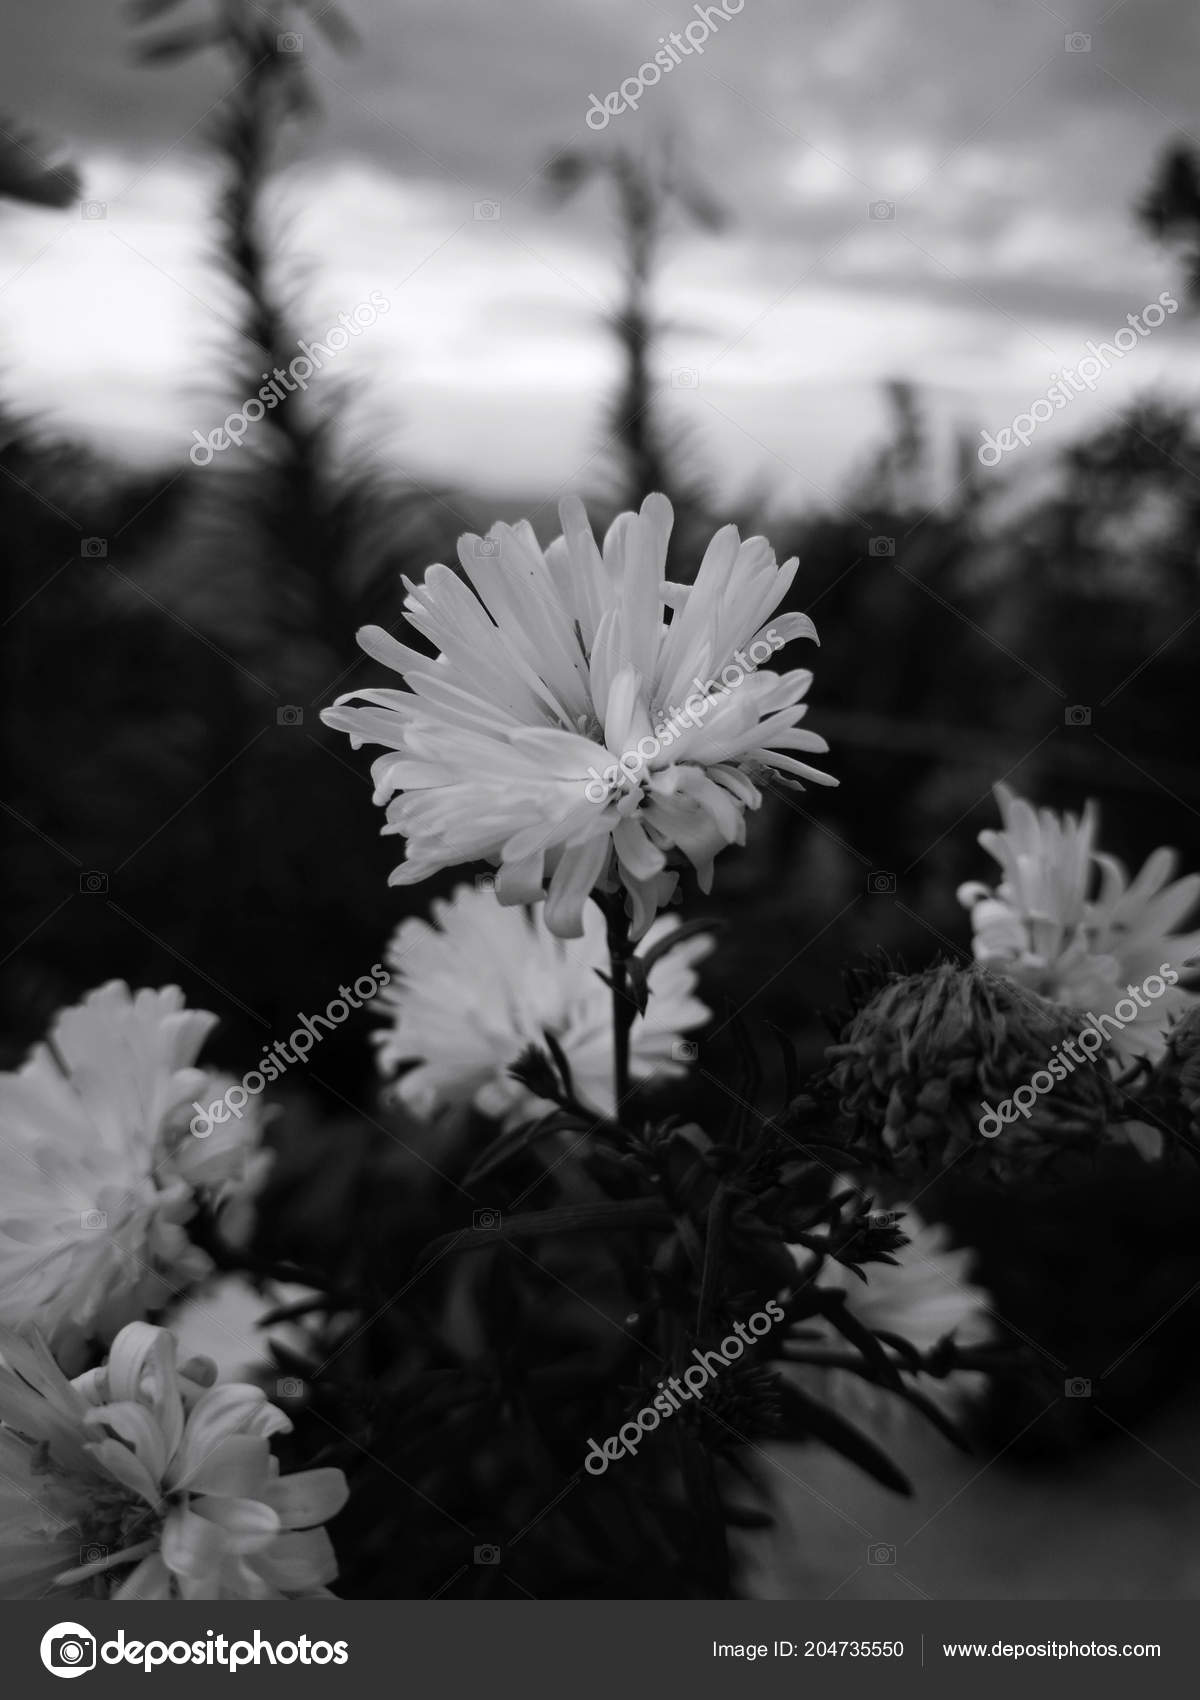 Garden White Flowers Defined Petals High Contrast Black White Flowers Stock Photo C Davidbautista 204735550